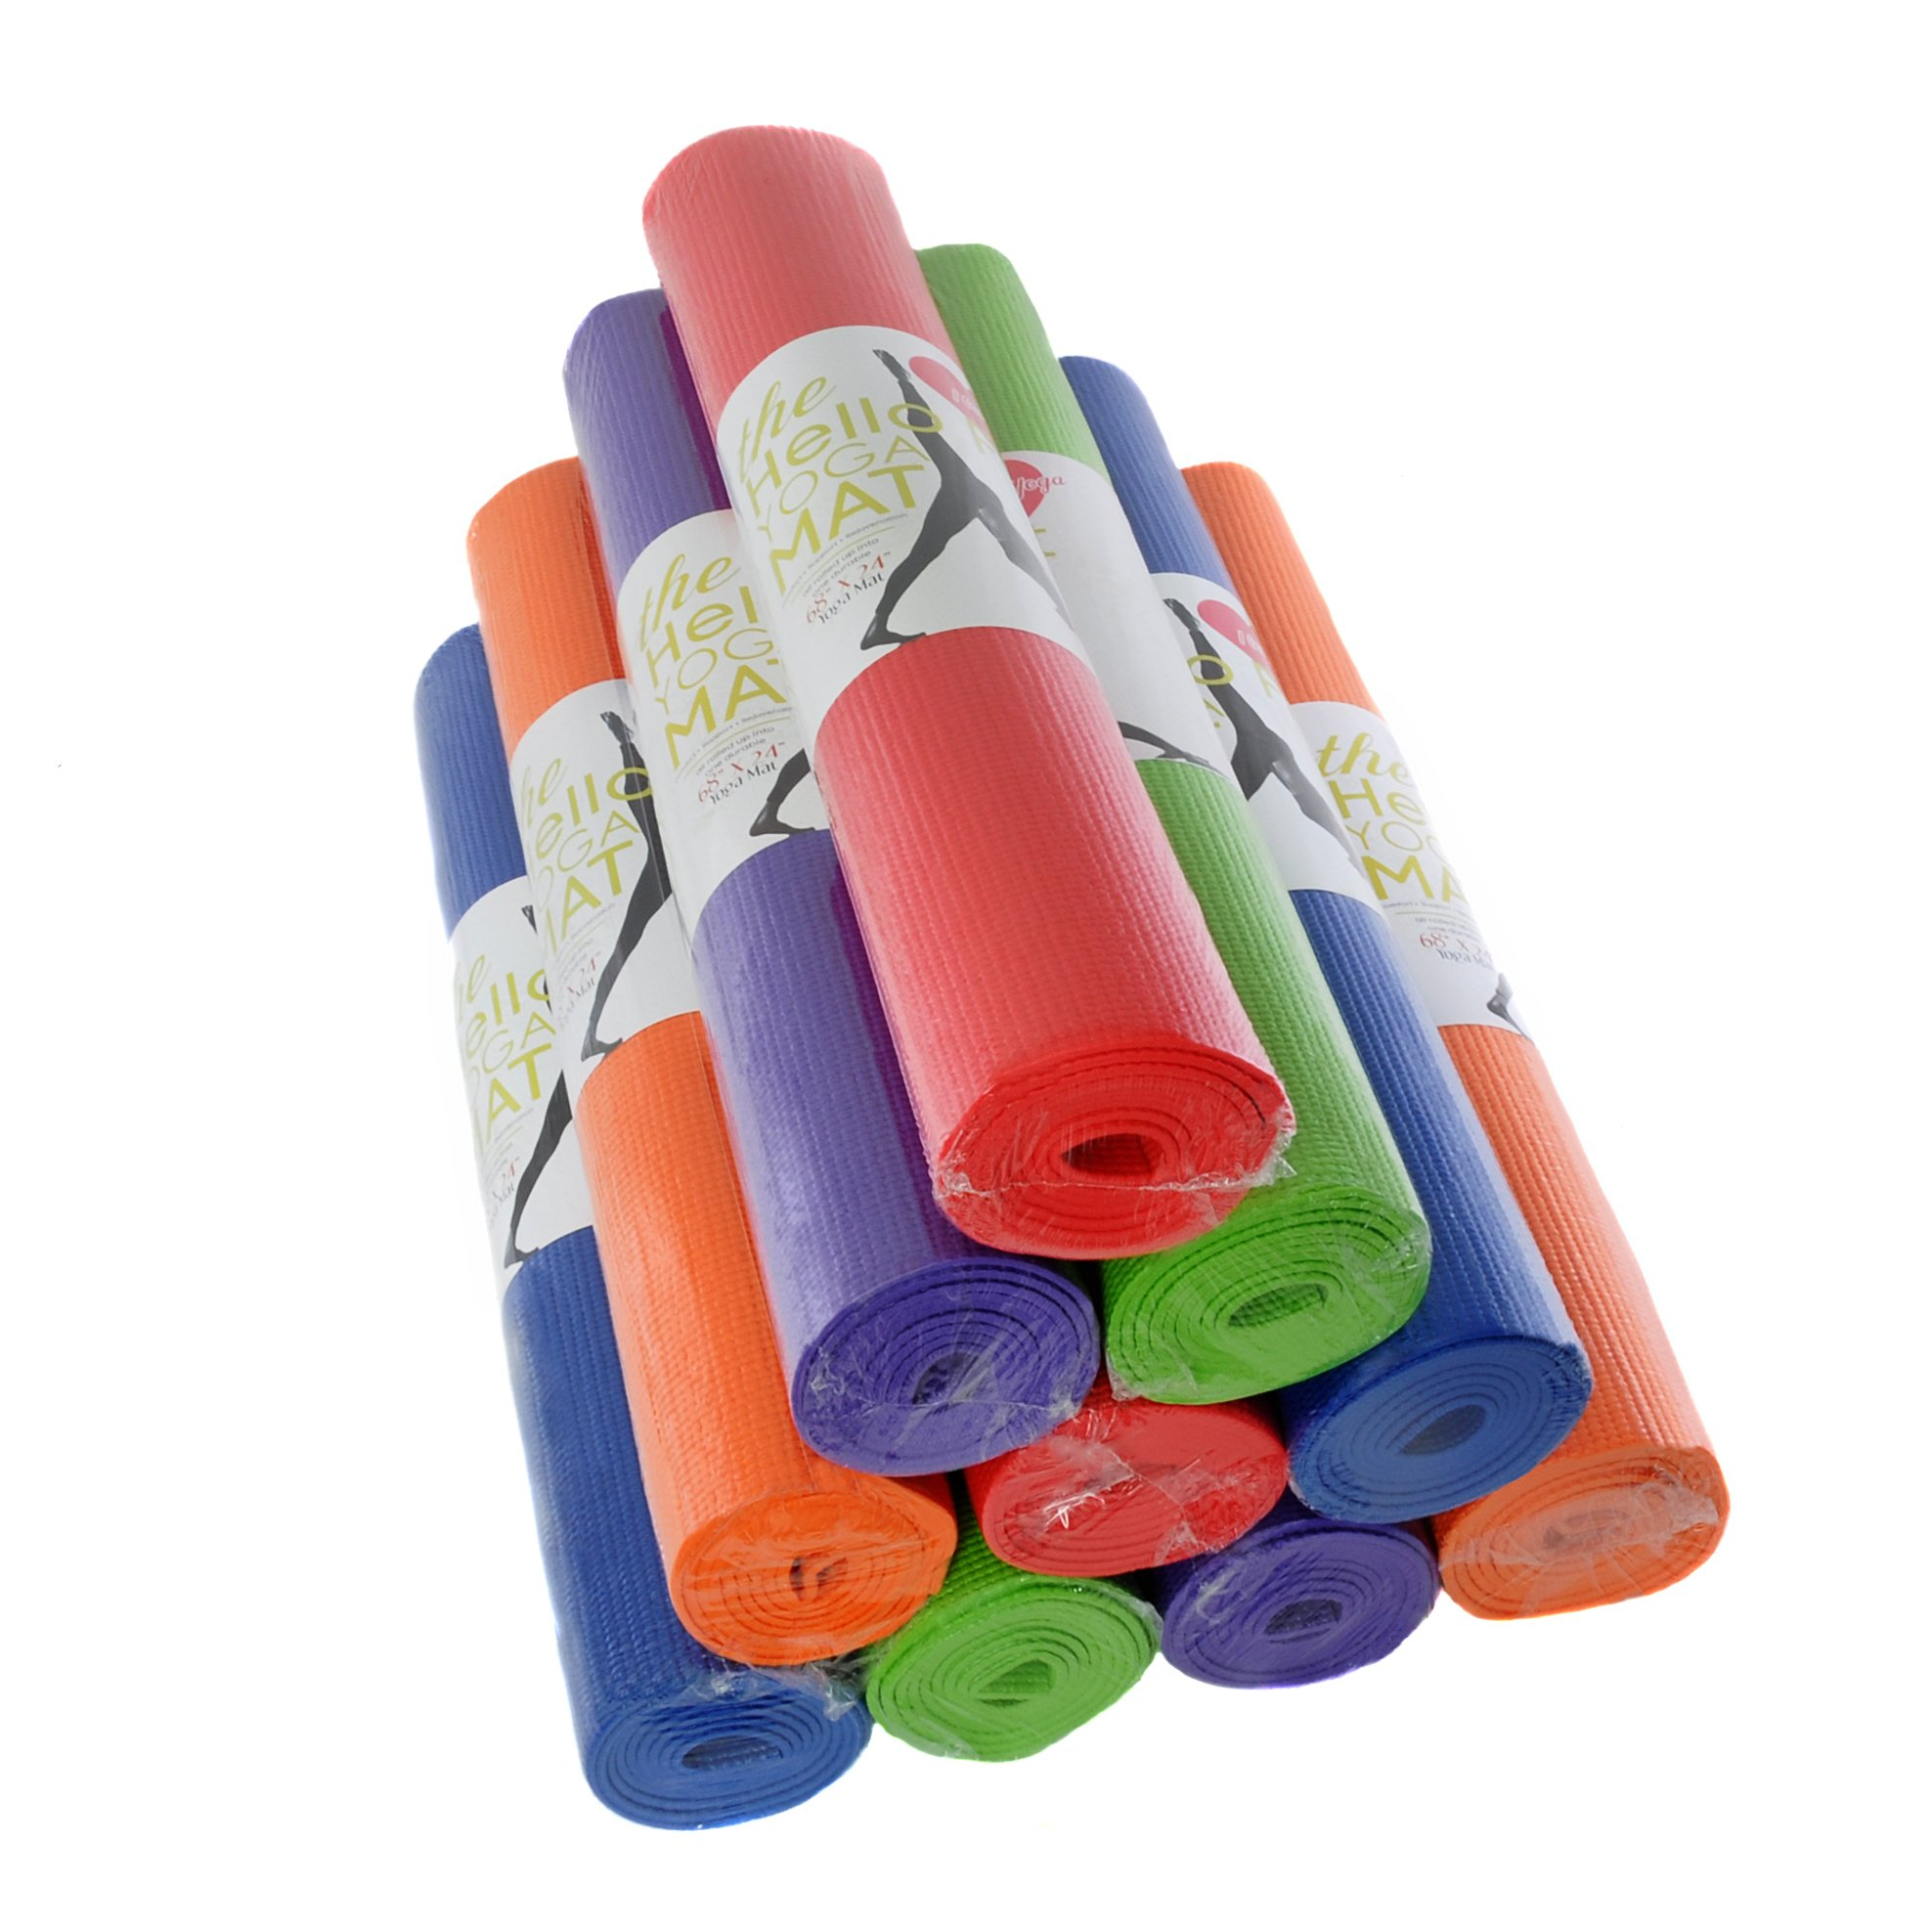 Hello Fit Yoga Mats - Budget-Friendly 10-Pack - Non-Slip - Moisture Resistant - Non-Toxic - Durable (Assorted)